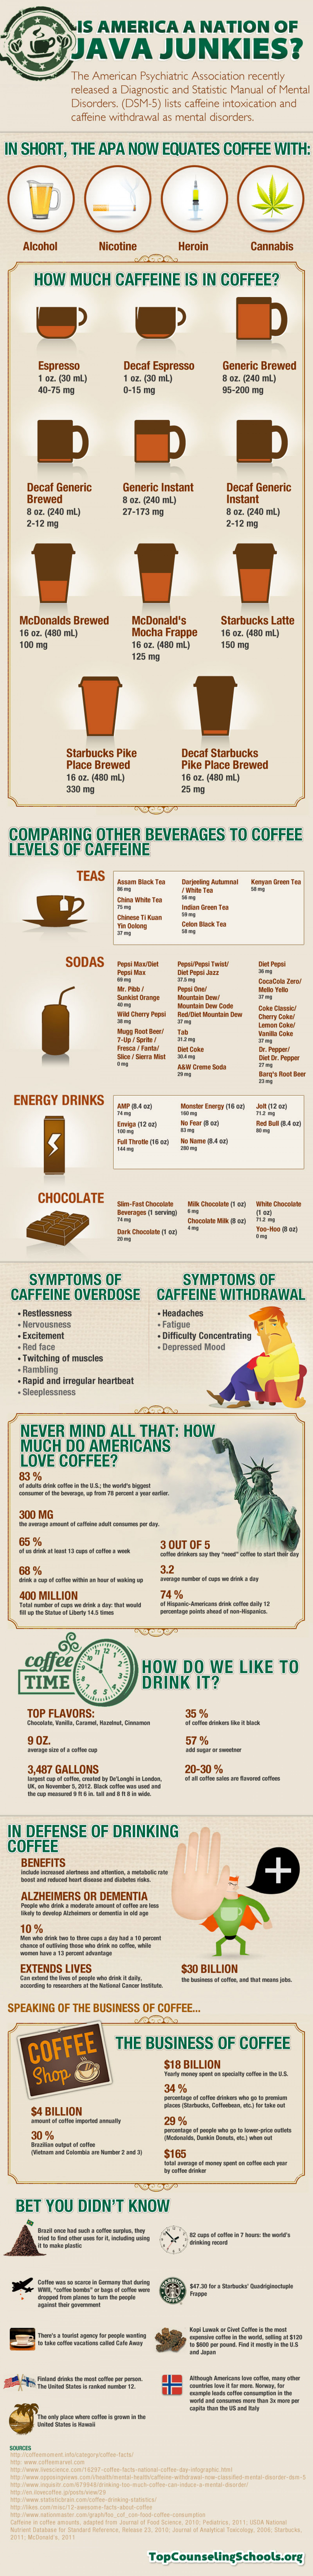 Is America a nation of java junkies? Infographic